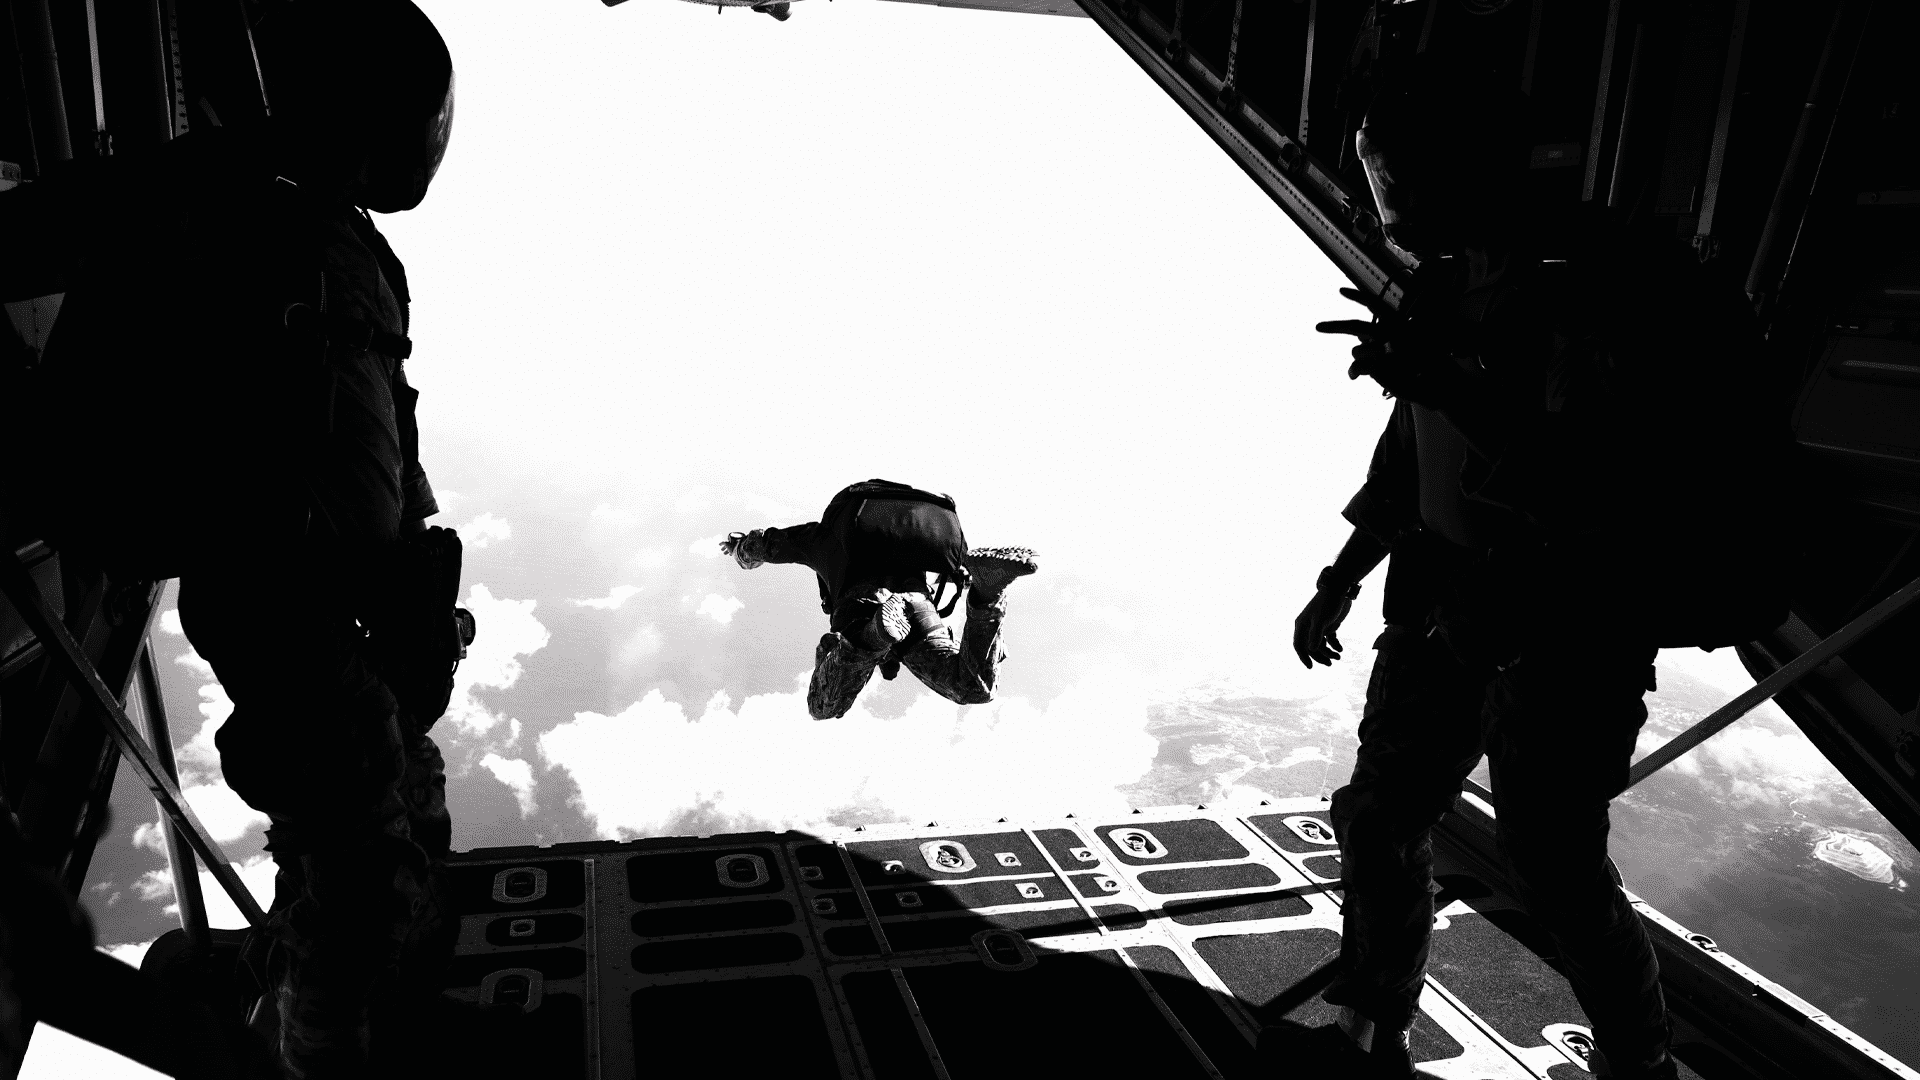 U.S. Navy sailors jump from a C-130 Hercules aircraft during military free fall jump sustainment training near Santa Rita, Guam, Oct. 14, 2015. The sailors are assigned to Explosive Ordnance Disposal Mobile Unit 5.